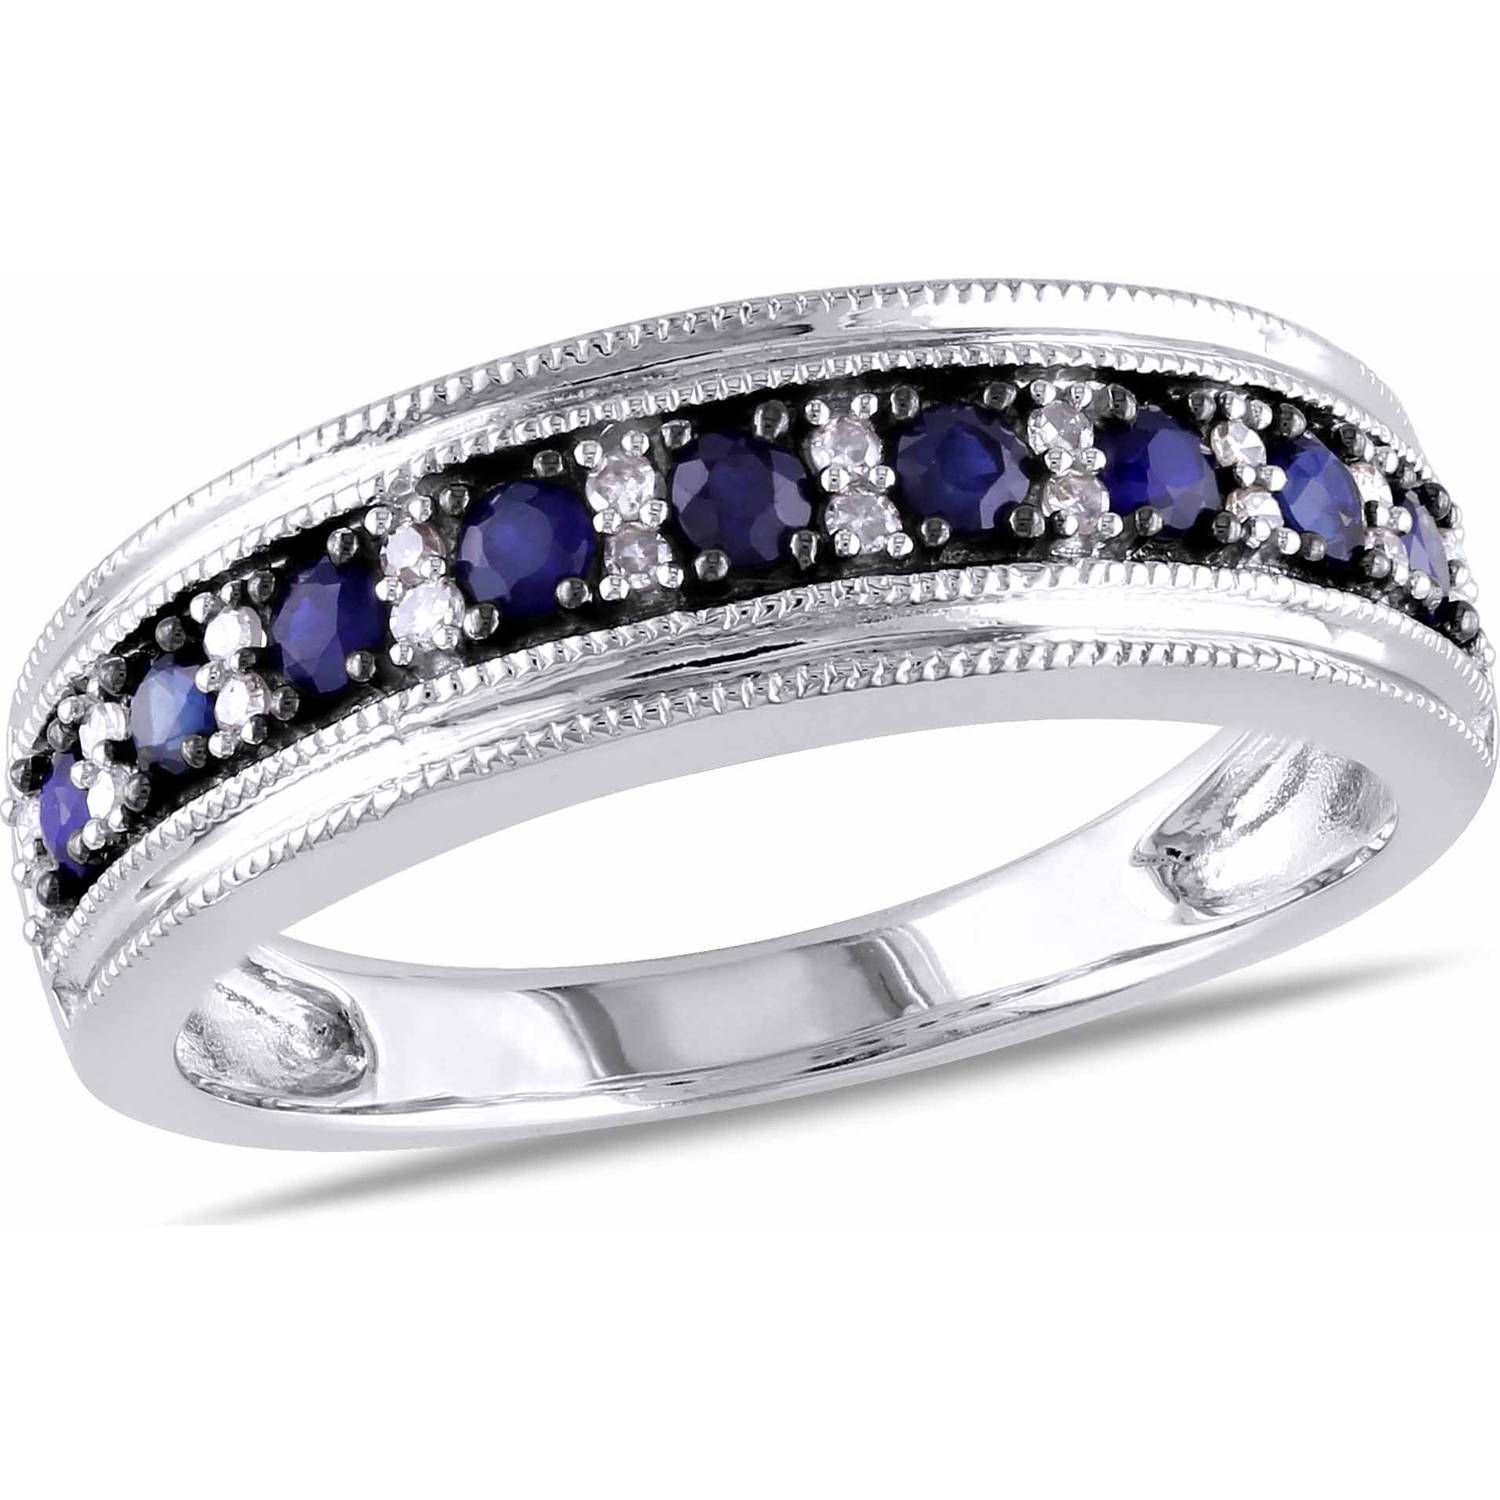 Tangelo 1/2 Carat T.G.W. Blue Sapphire and 1/10 Carat T.W. Diamond 10kt White Gold Semi-Eternity Anniversary Ring